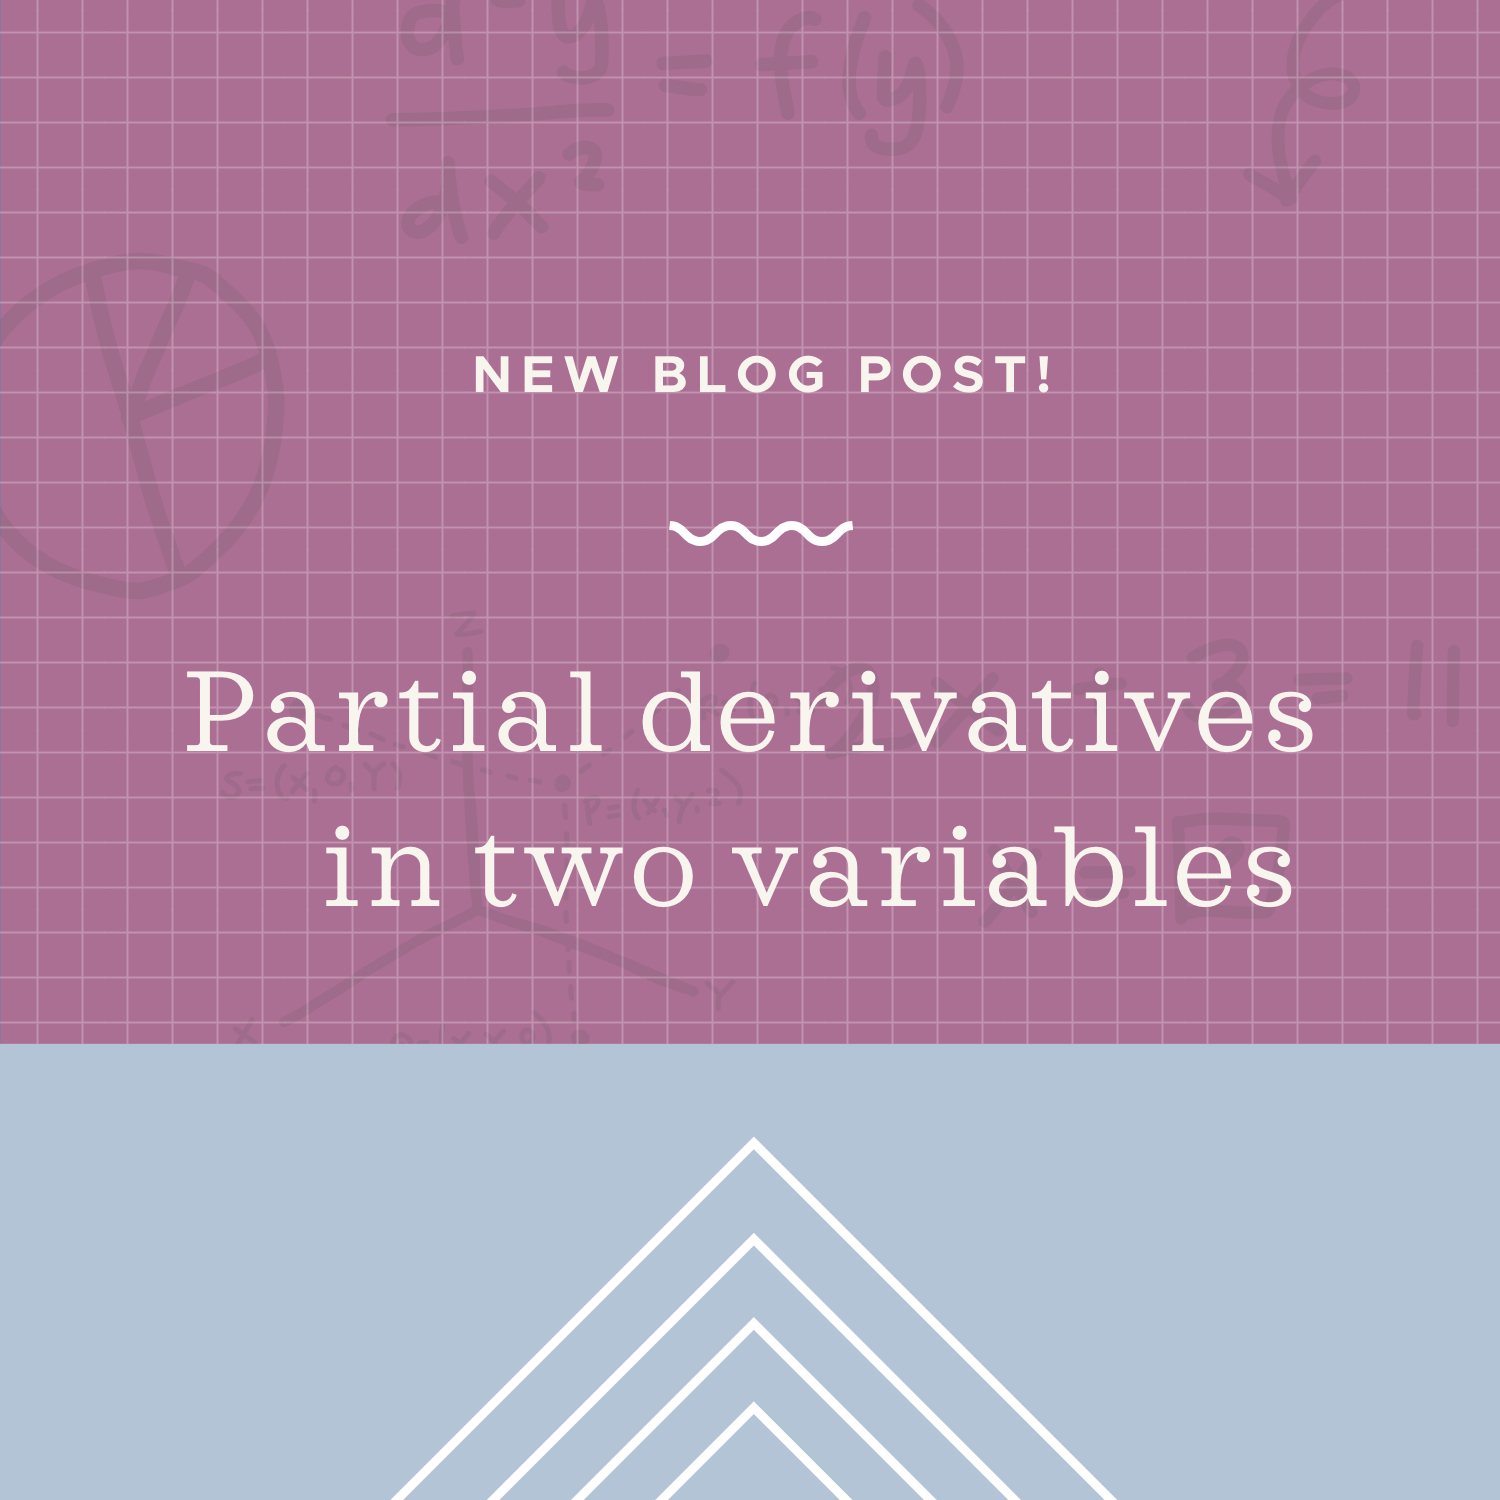 partial derivatives in two variables.jpeg